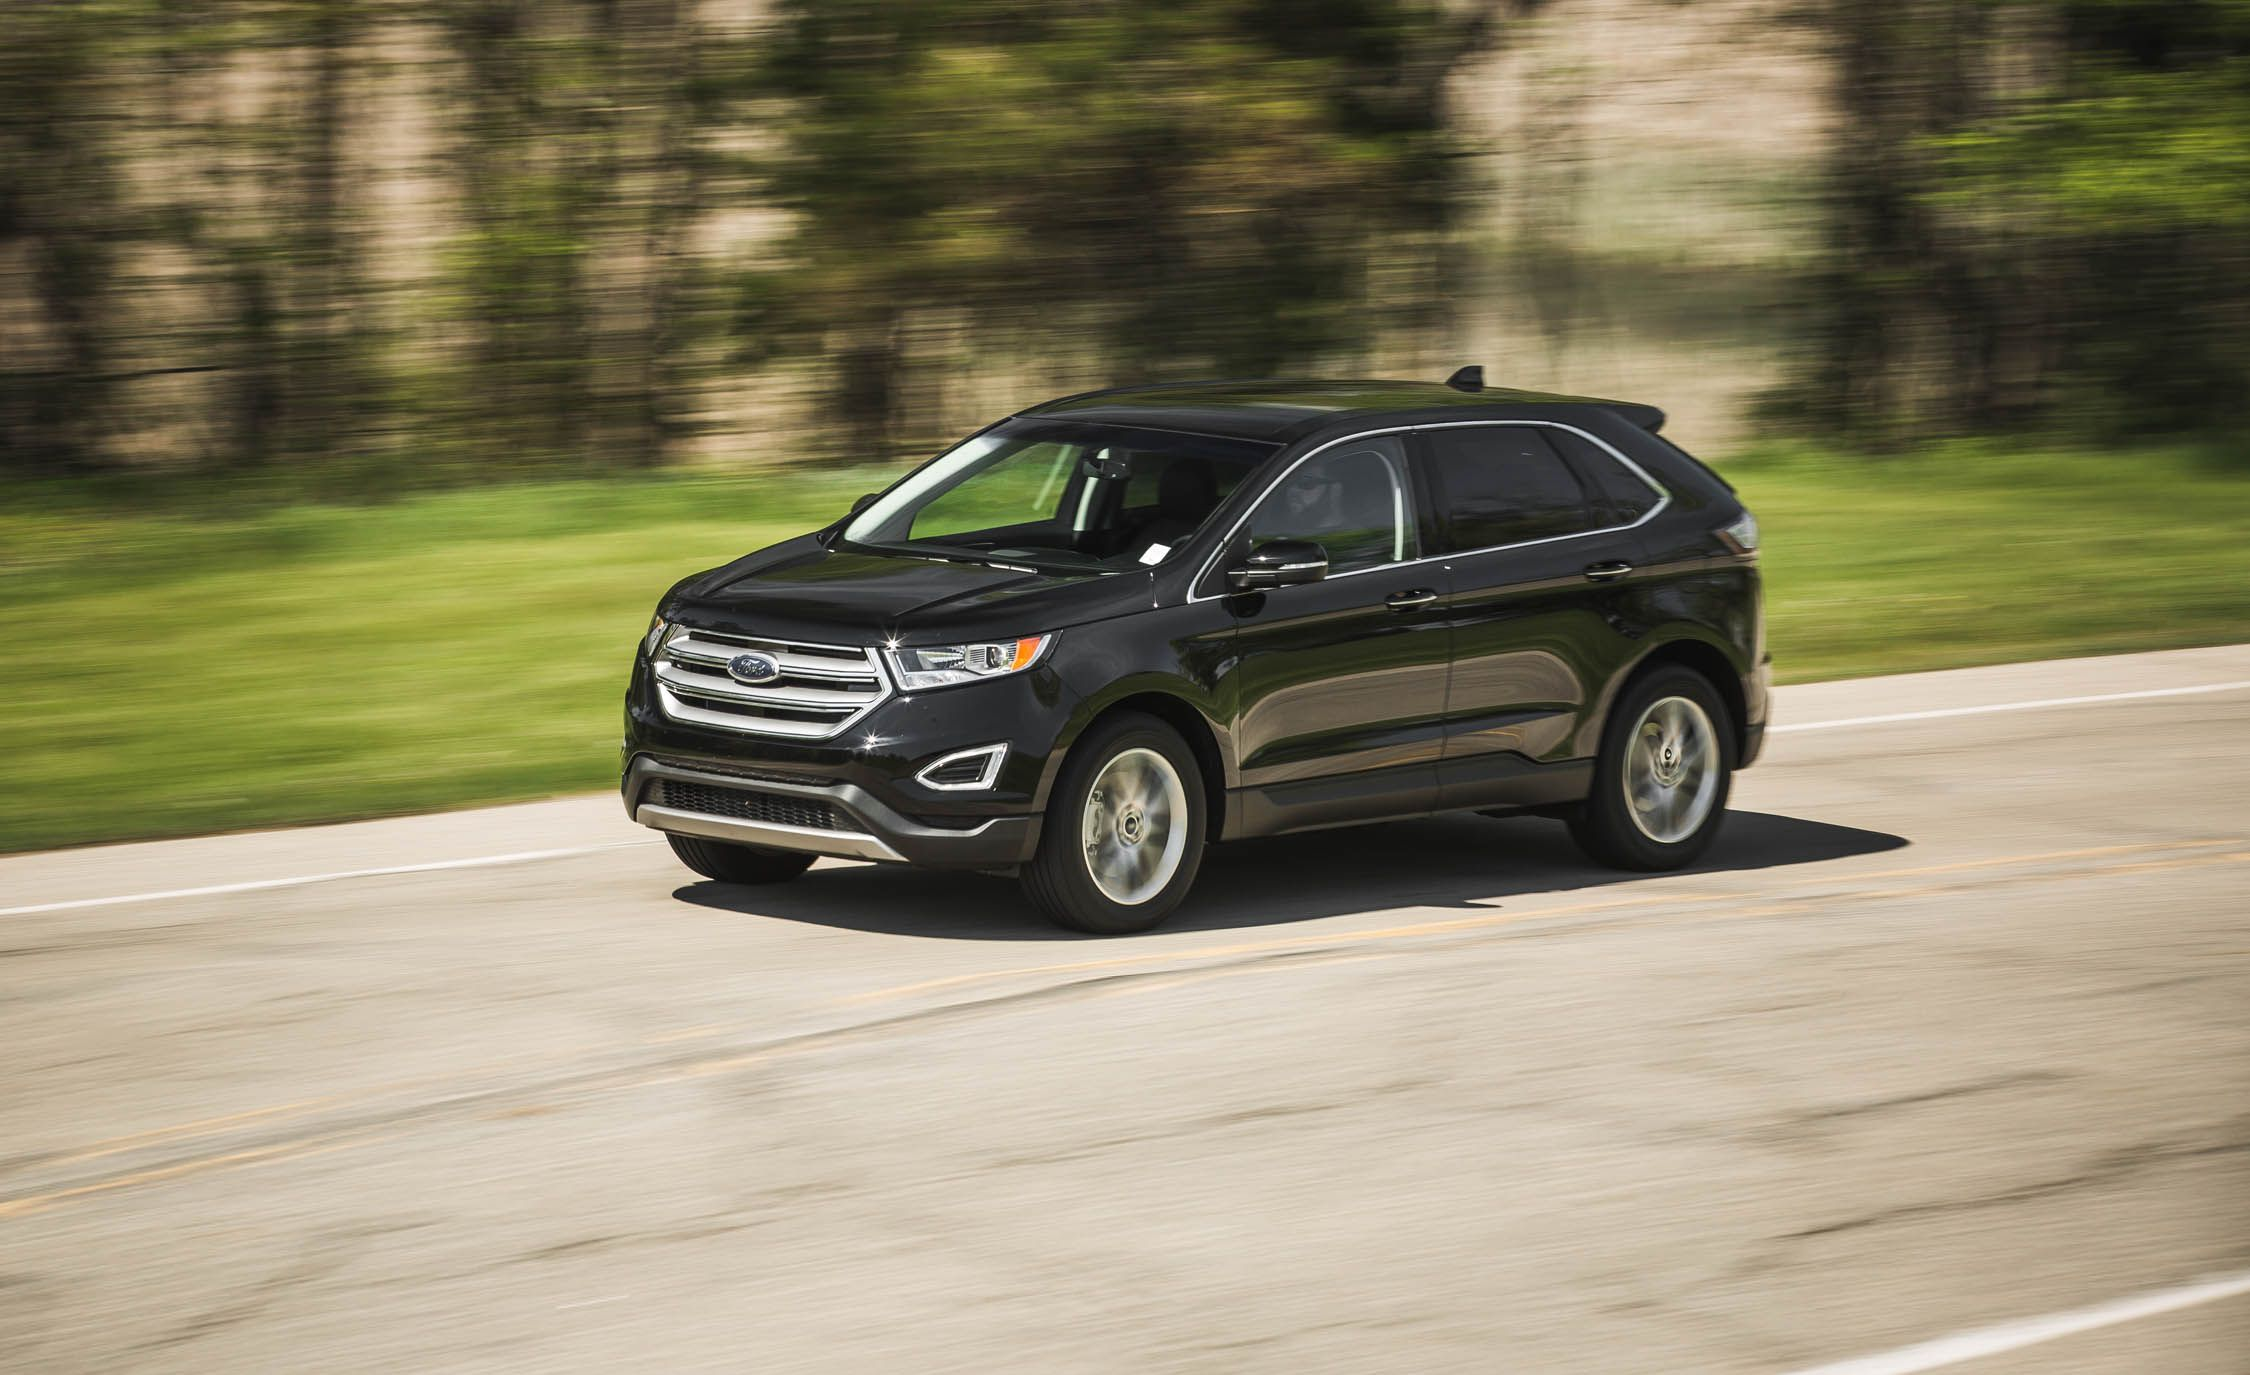 2008 Ford Edge Transmission >> 2017 Ford Edge | In-Depth Model Review | Car and Driver